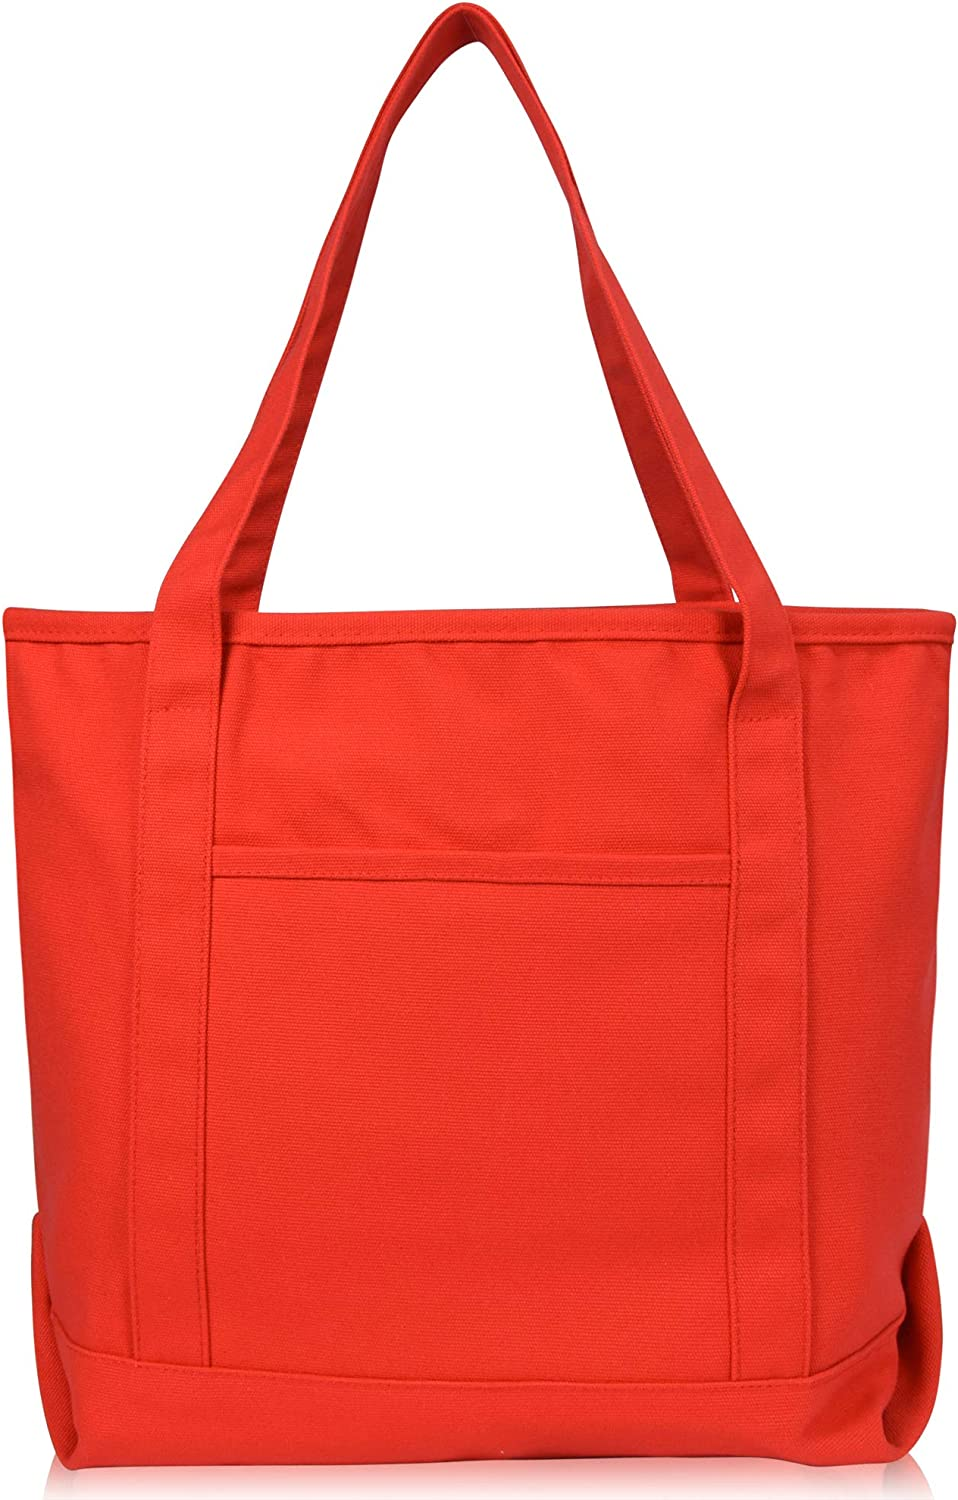 """DALIX 20"""" Solid Color Cotton Canvas Shopping Tote Bag in Red"""